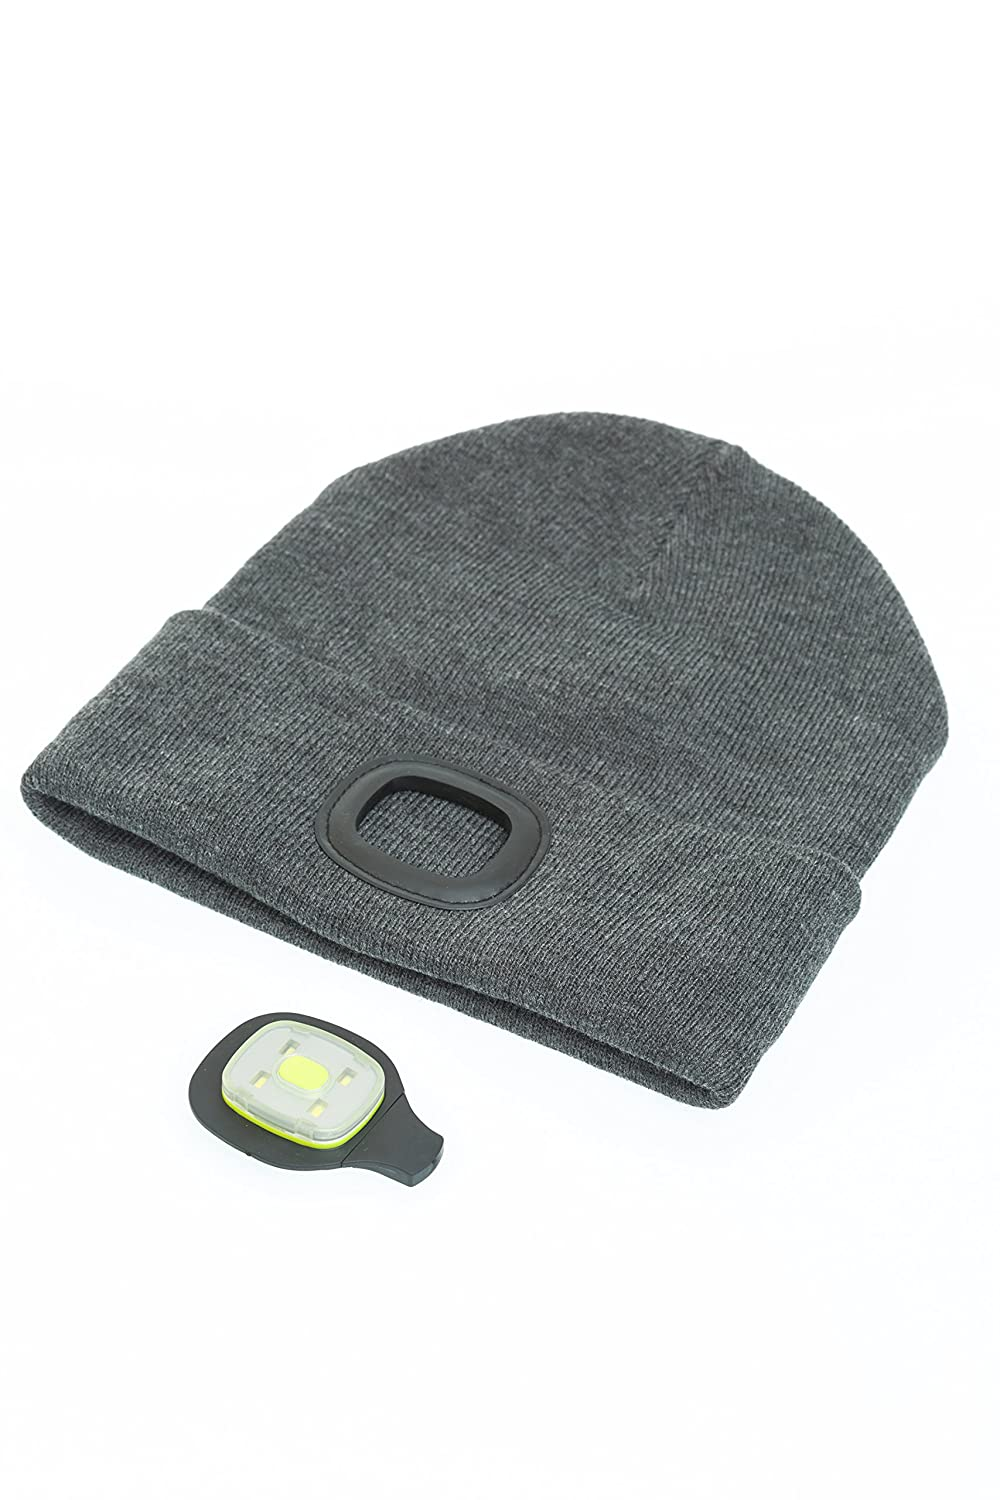 88ad9d67fc4 I Beanie Beanie Hat with Rechargeable LED Lights  Amazon.co.uk  Sports    Outdoors